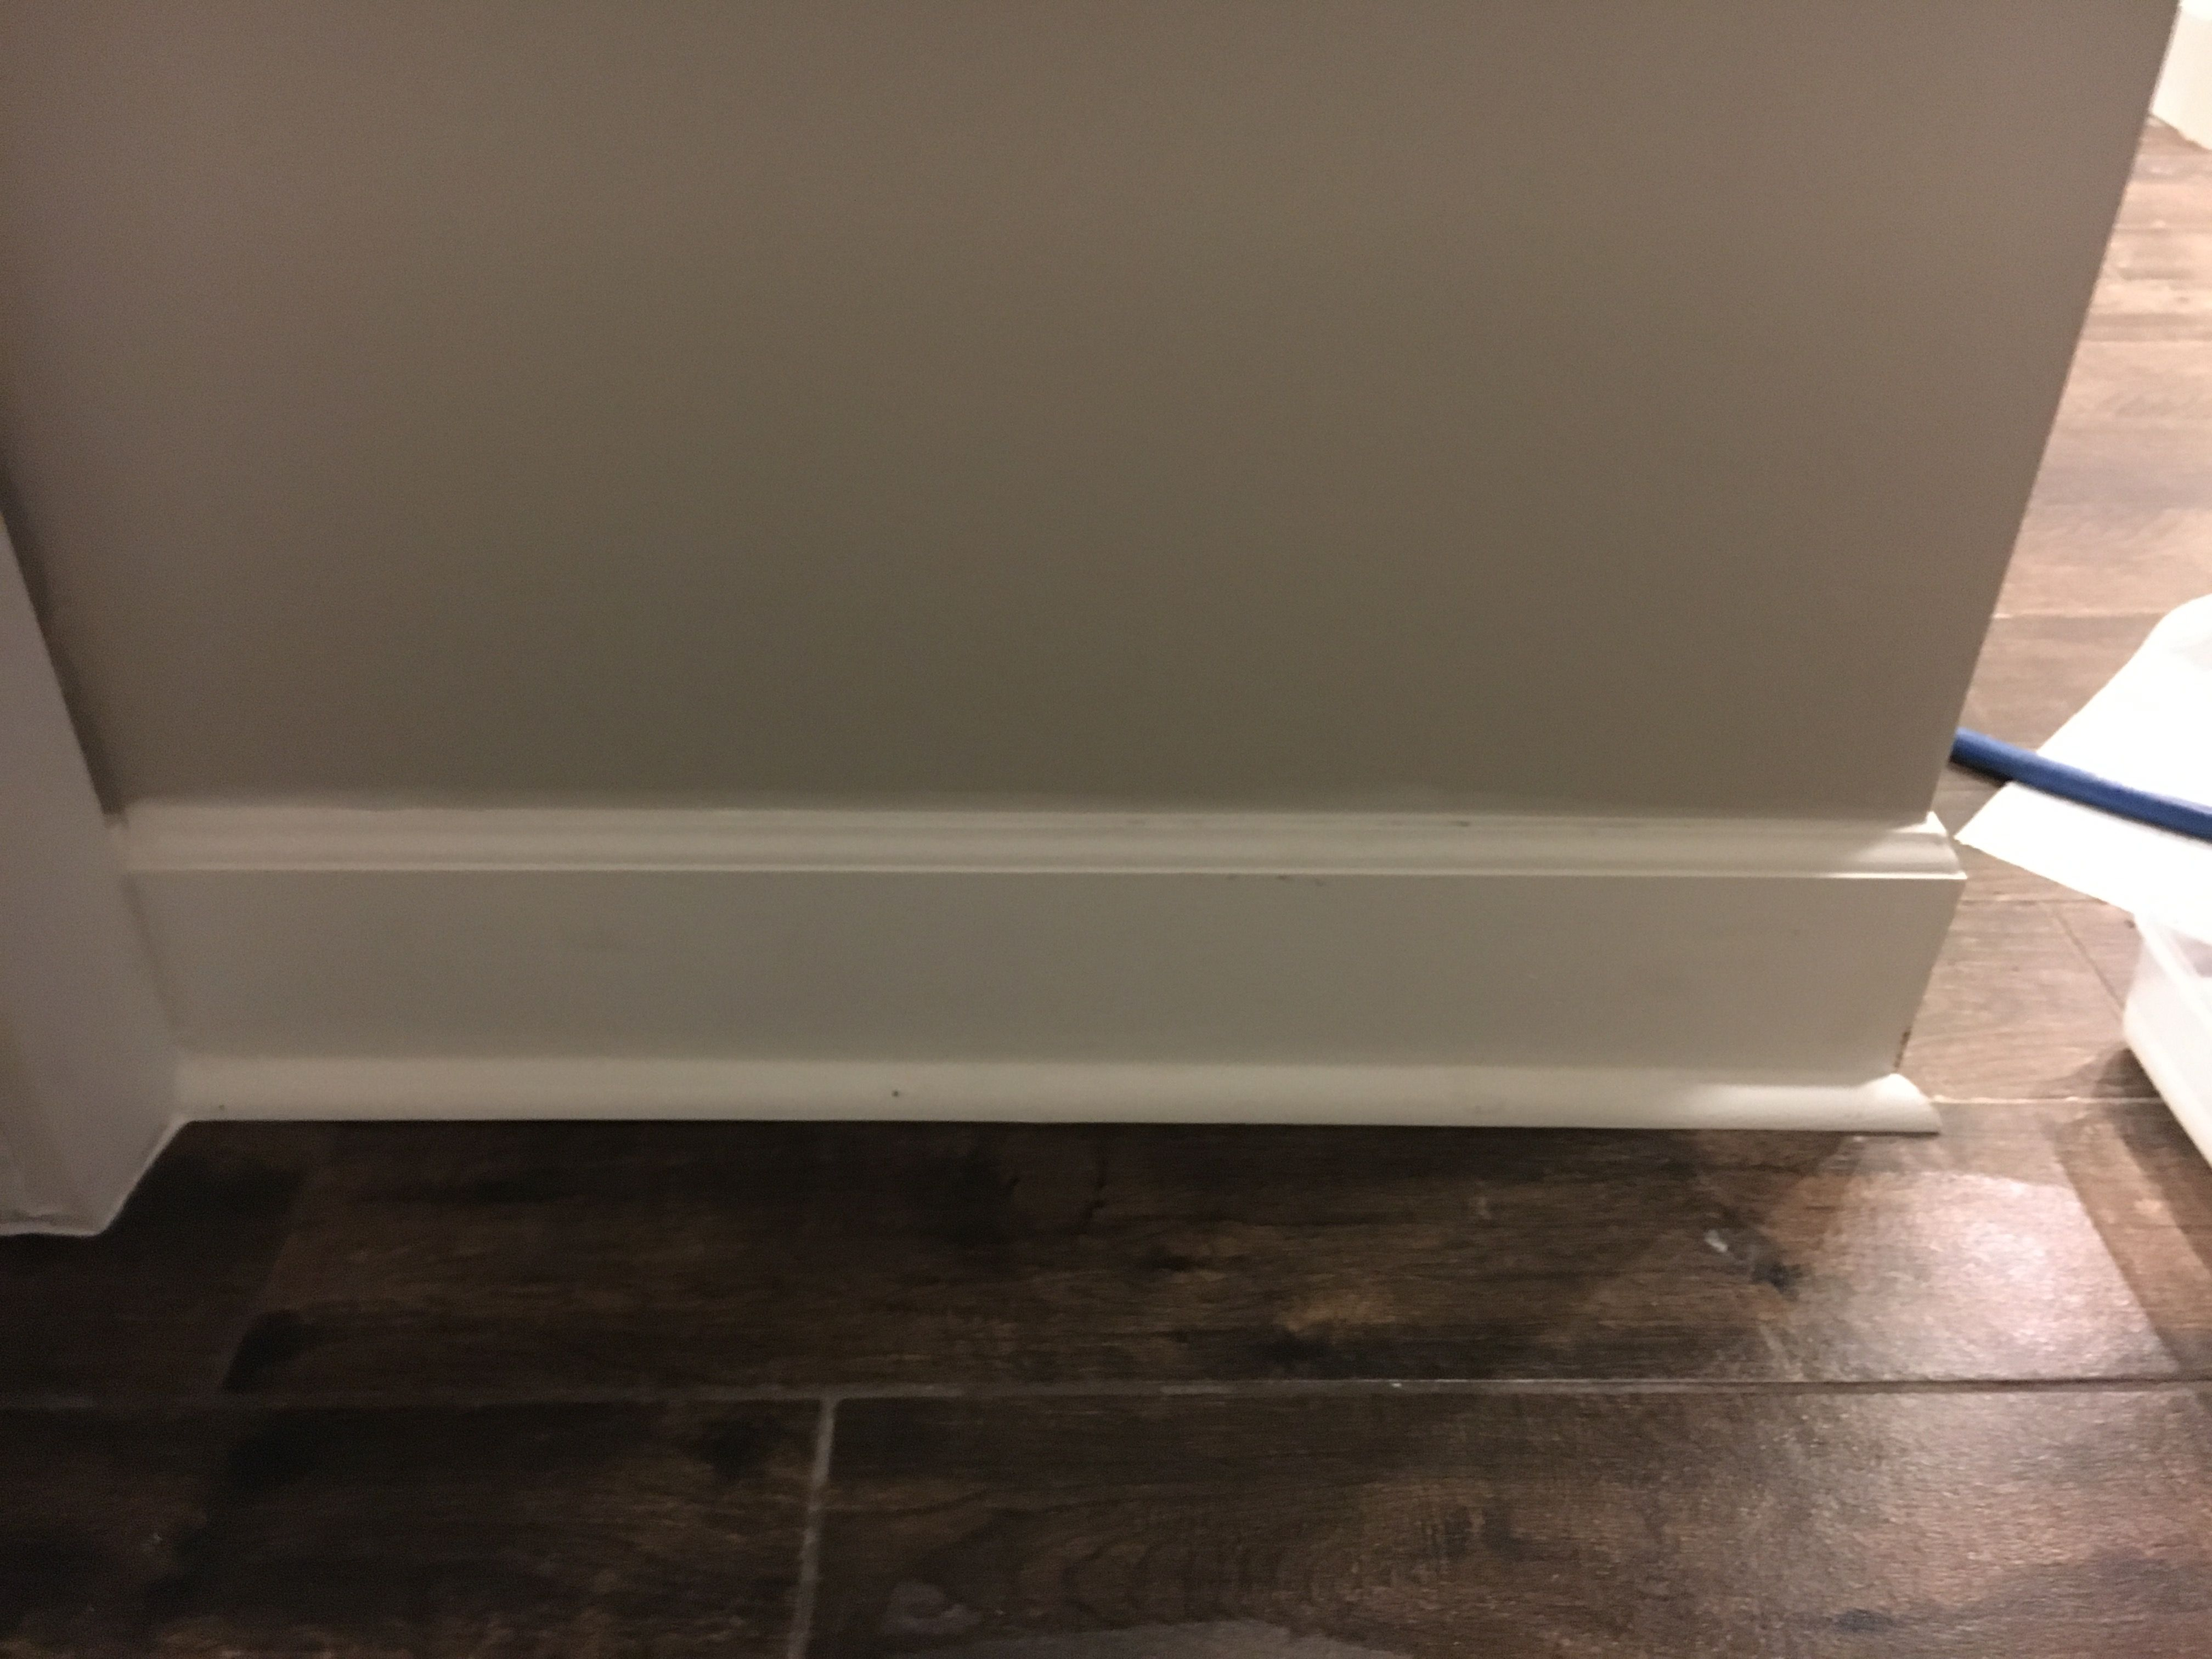 Shoe Molding Vs Quarter Round Baseboard With Quarter Round | Windows, Doors, And Trim